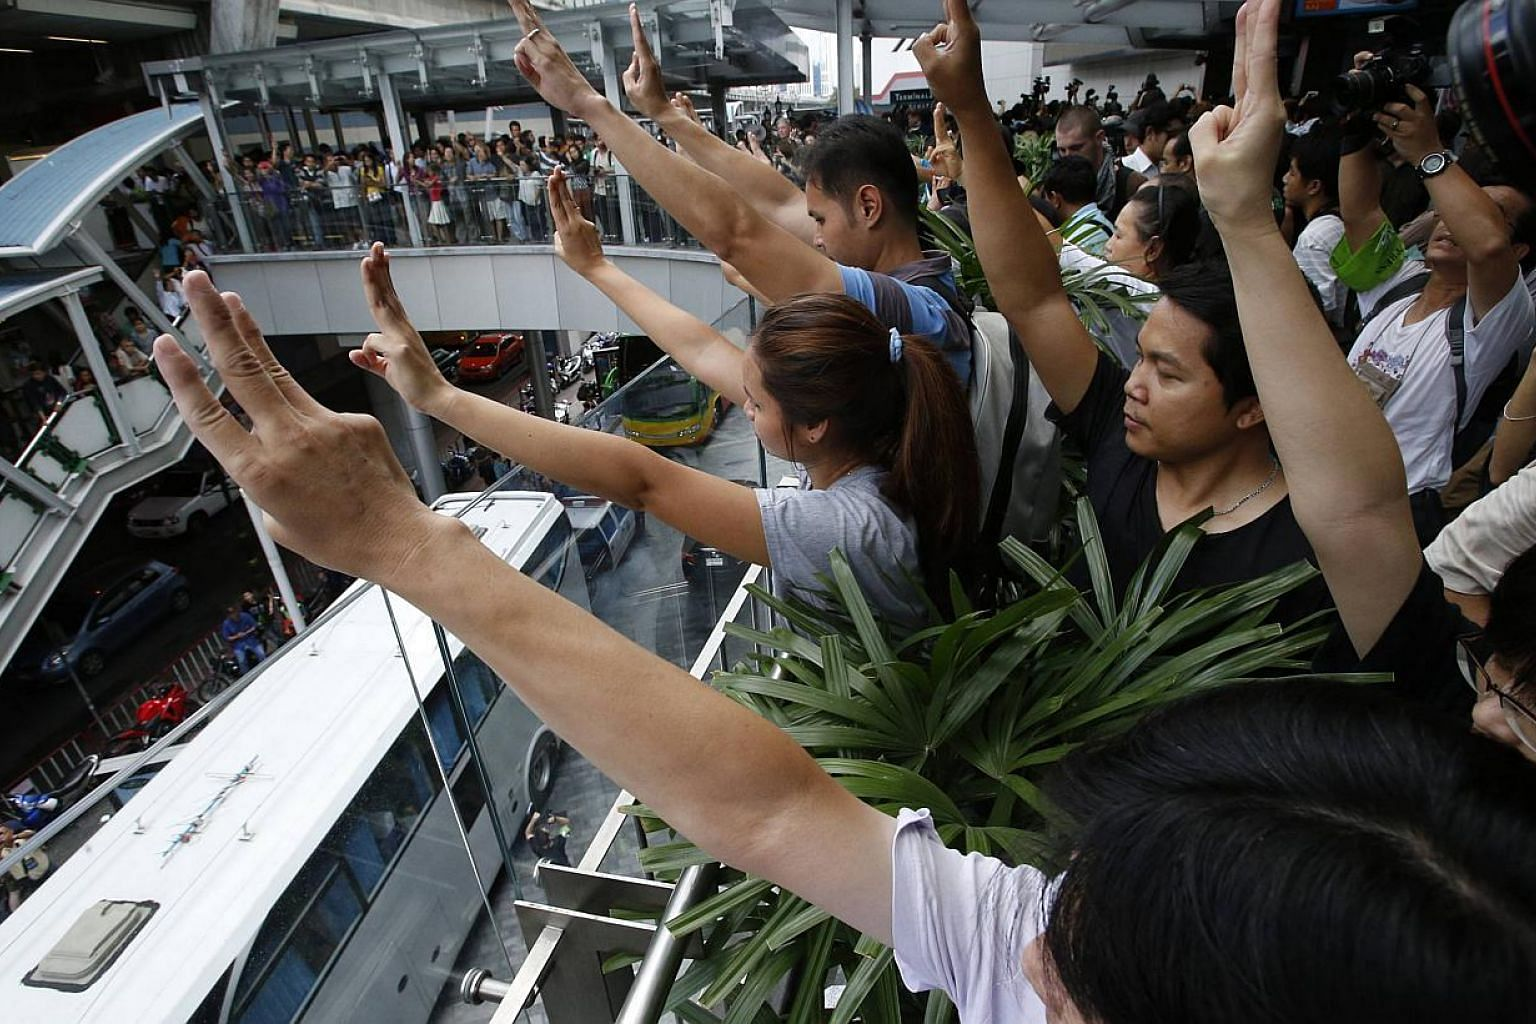 Protesters against military rule gesture by holding up their three middle fingers in the air, during a brief demonstration at a shopping mall in Bangkok on June 1, 2014. Supporters of Thailand's military junta are trying to hijack a gesture used by d